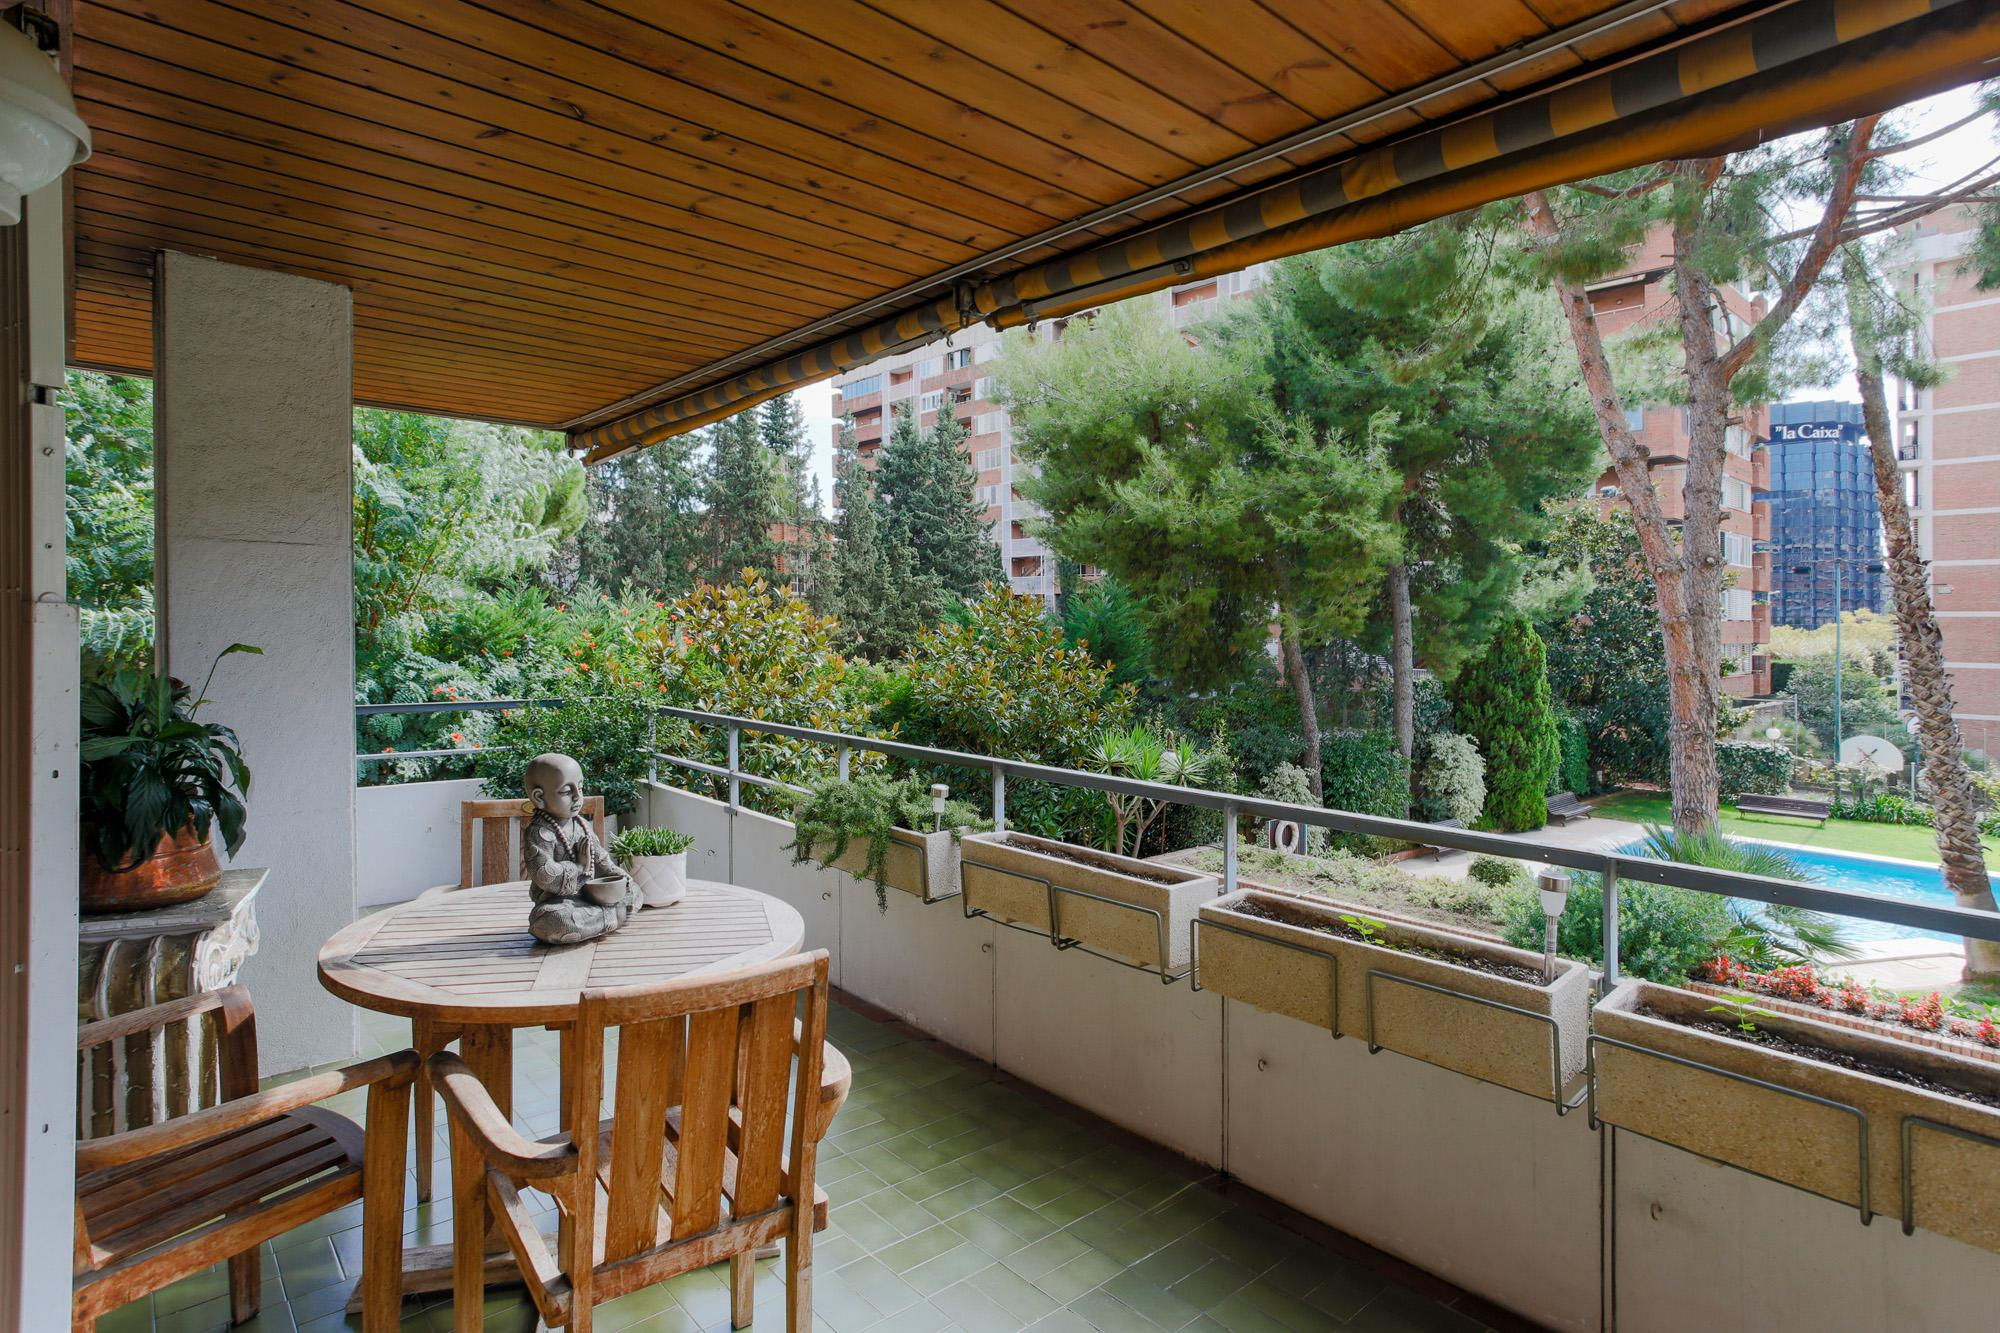 232863 Apartment for sale in Les Corts, Pedralbes 3